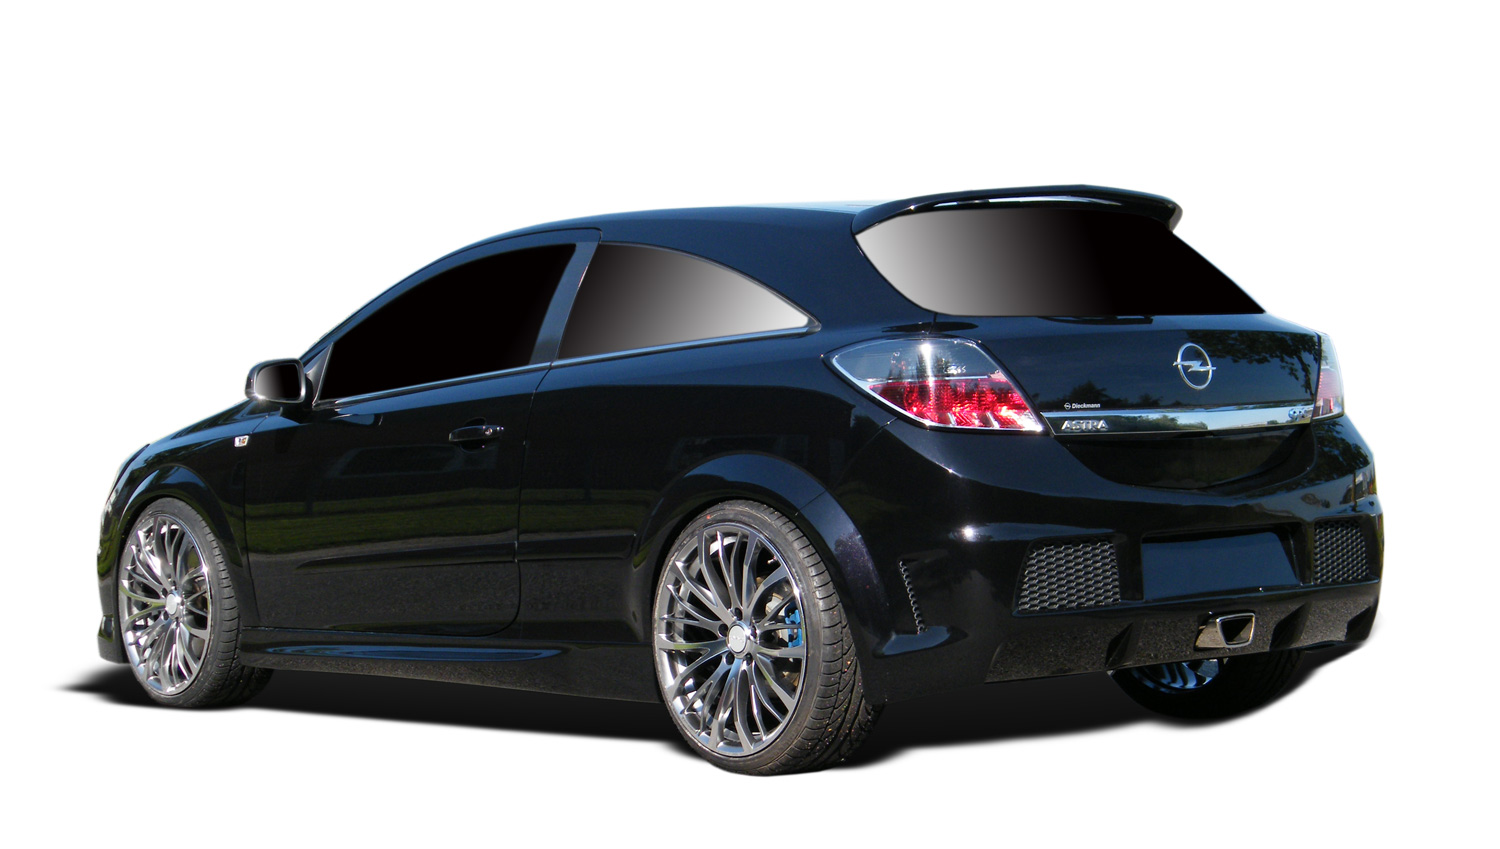 bodykit opel astra h opc frontspoiler seitenschwellersatz hecksto stange. Black Bedroom Furniture Sets. Home Design Ideas